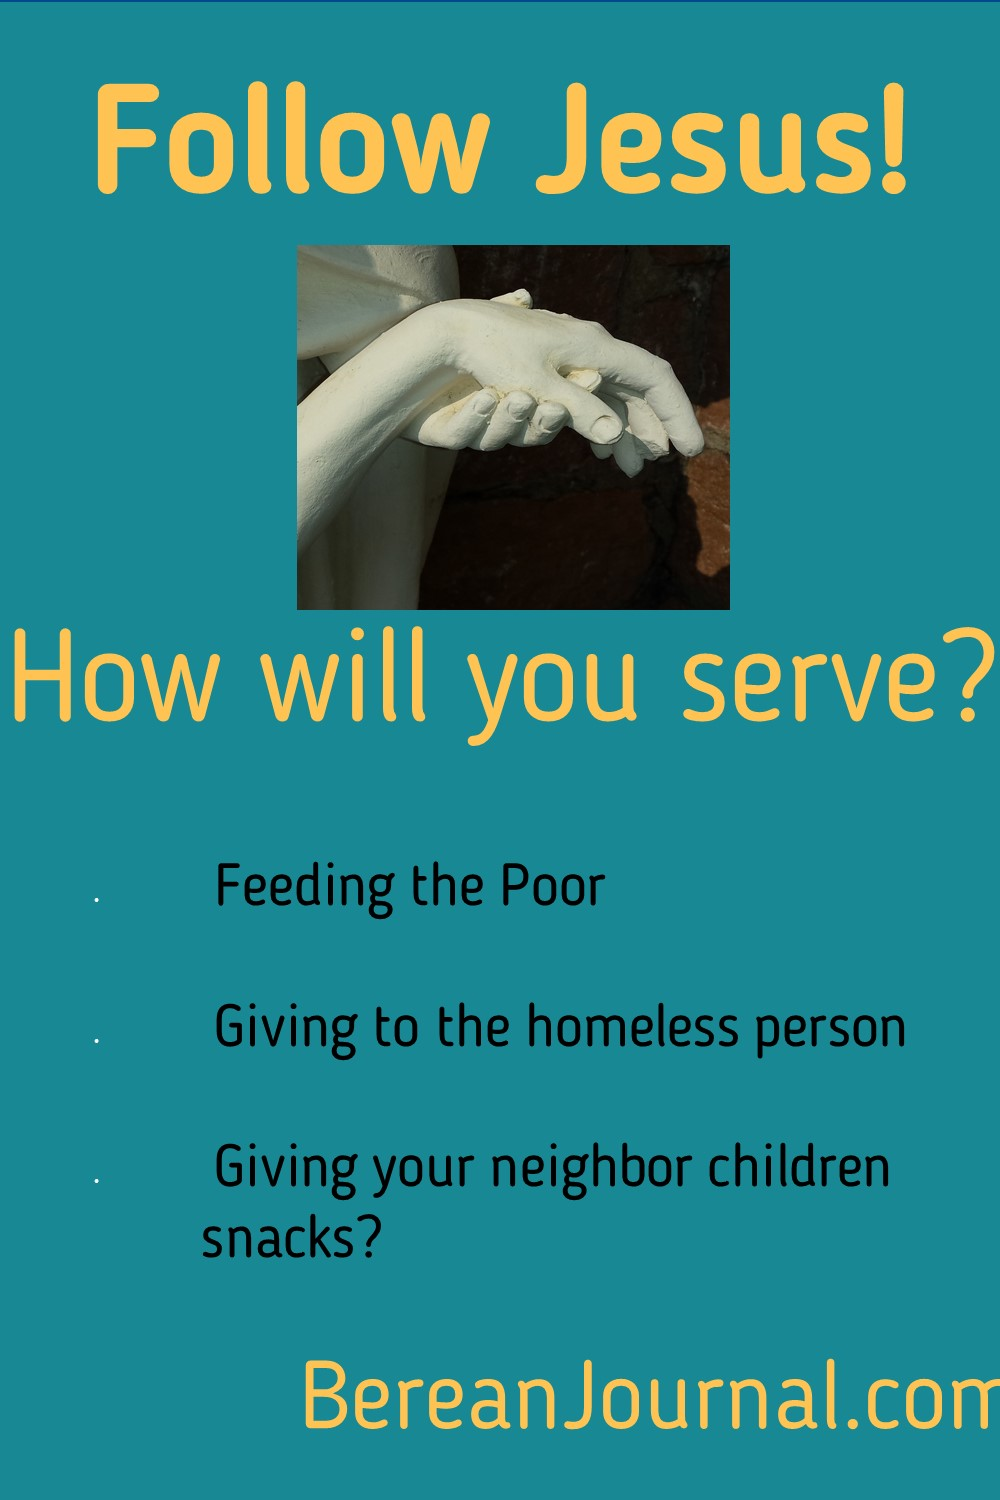 Serving others like Jesus